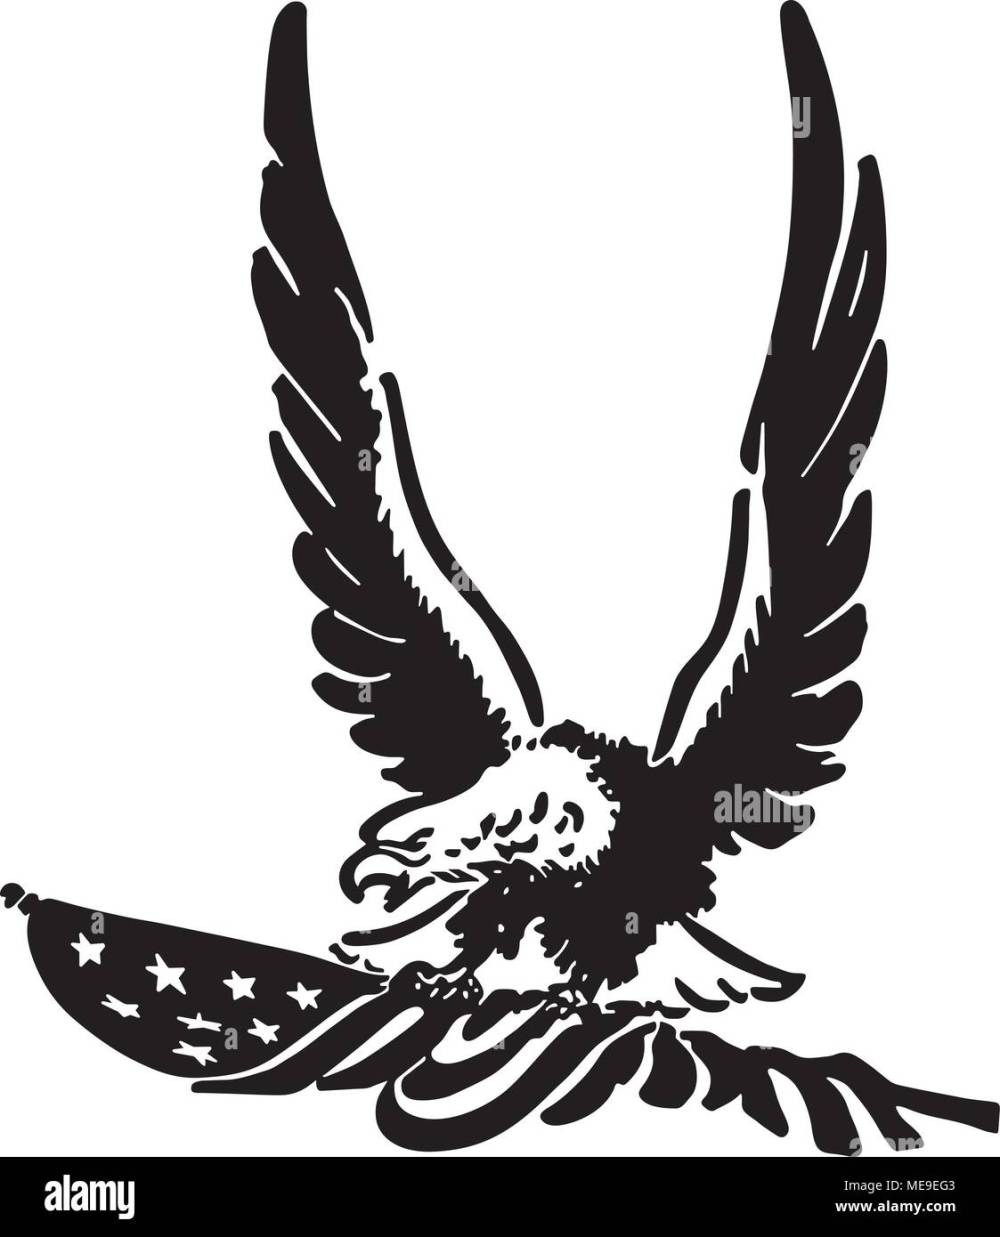 medium resolution of defiant american eagle retro clipart illustration